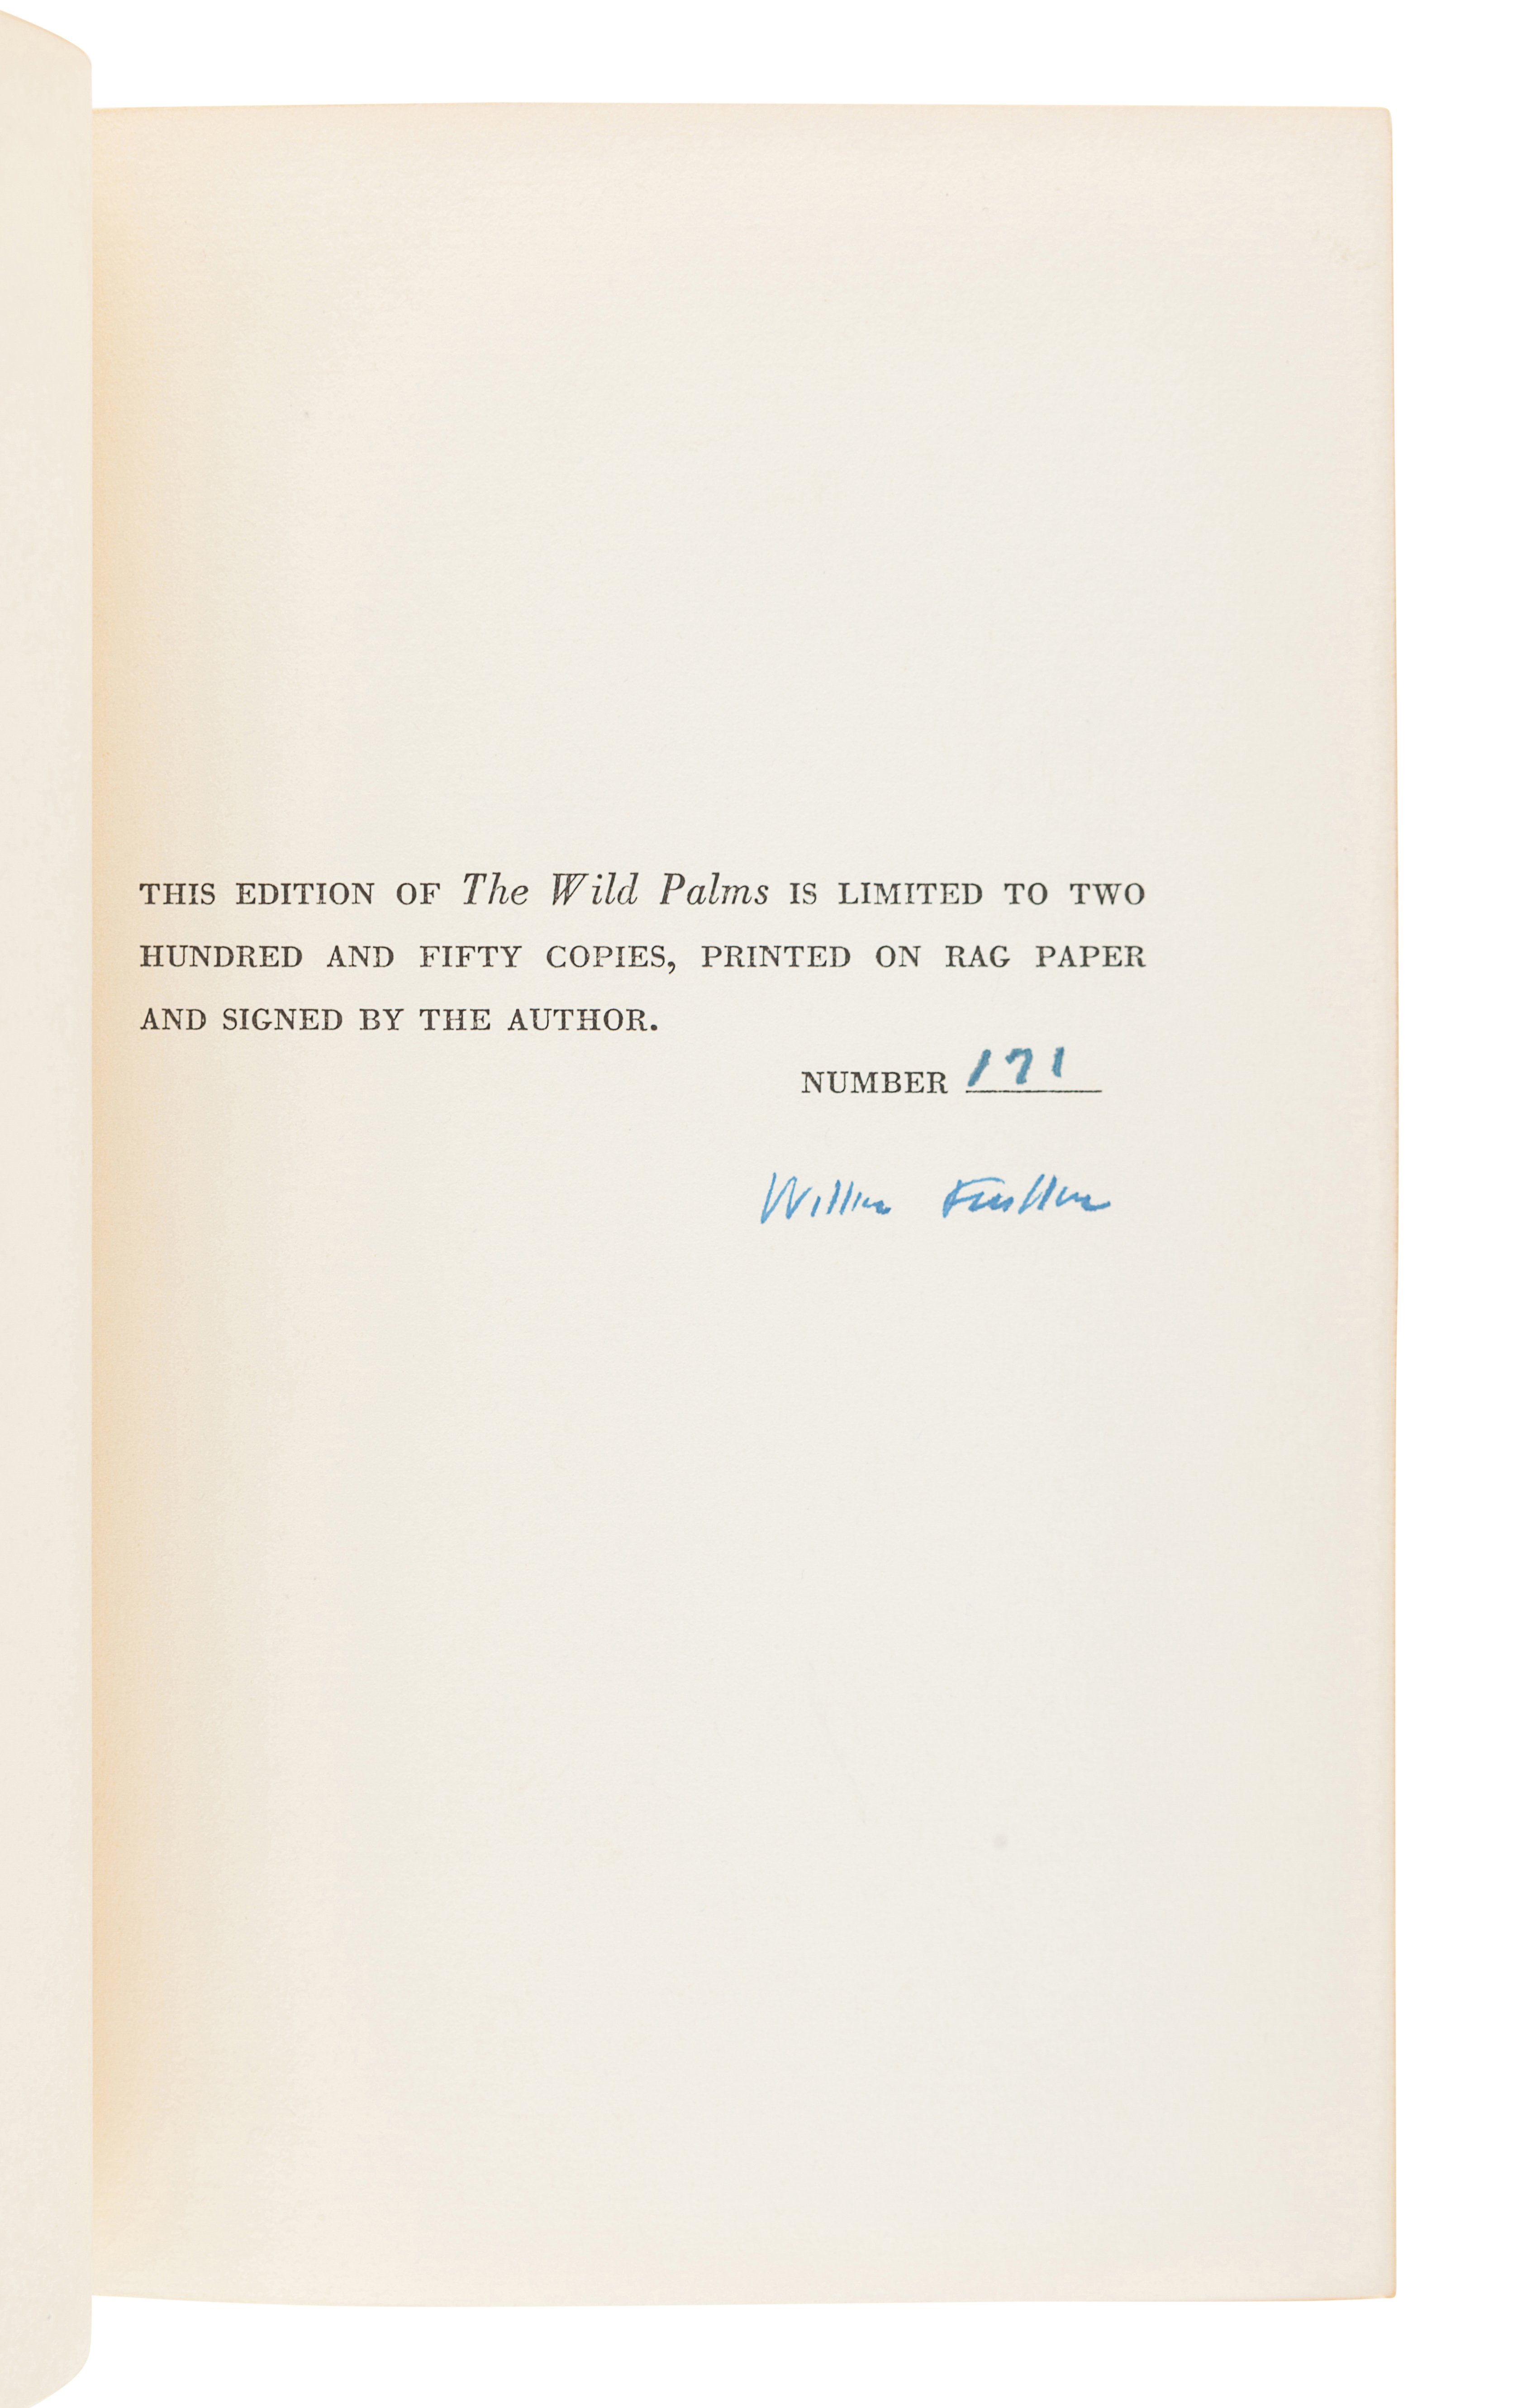 FAULKNER, William (1897-1962). The Wild Palms. New York: Random House, 1939.